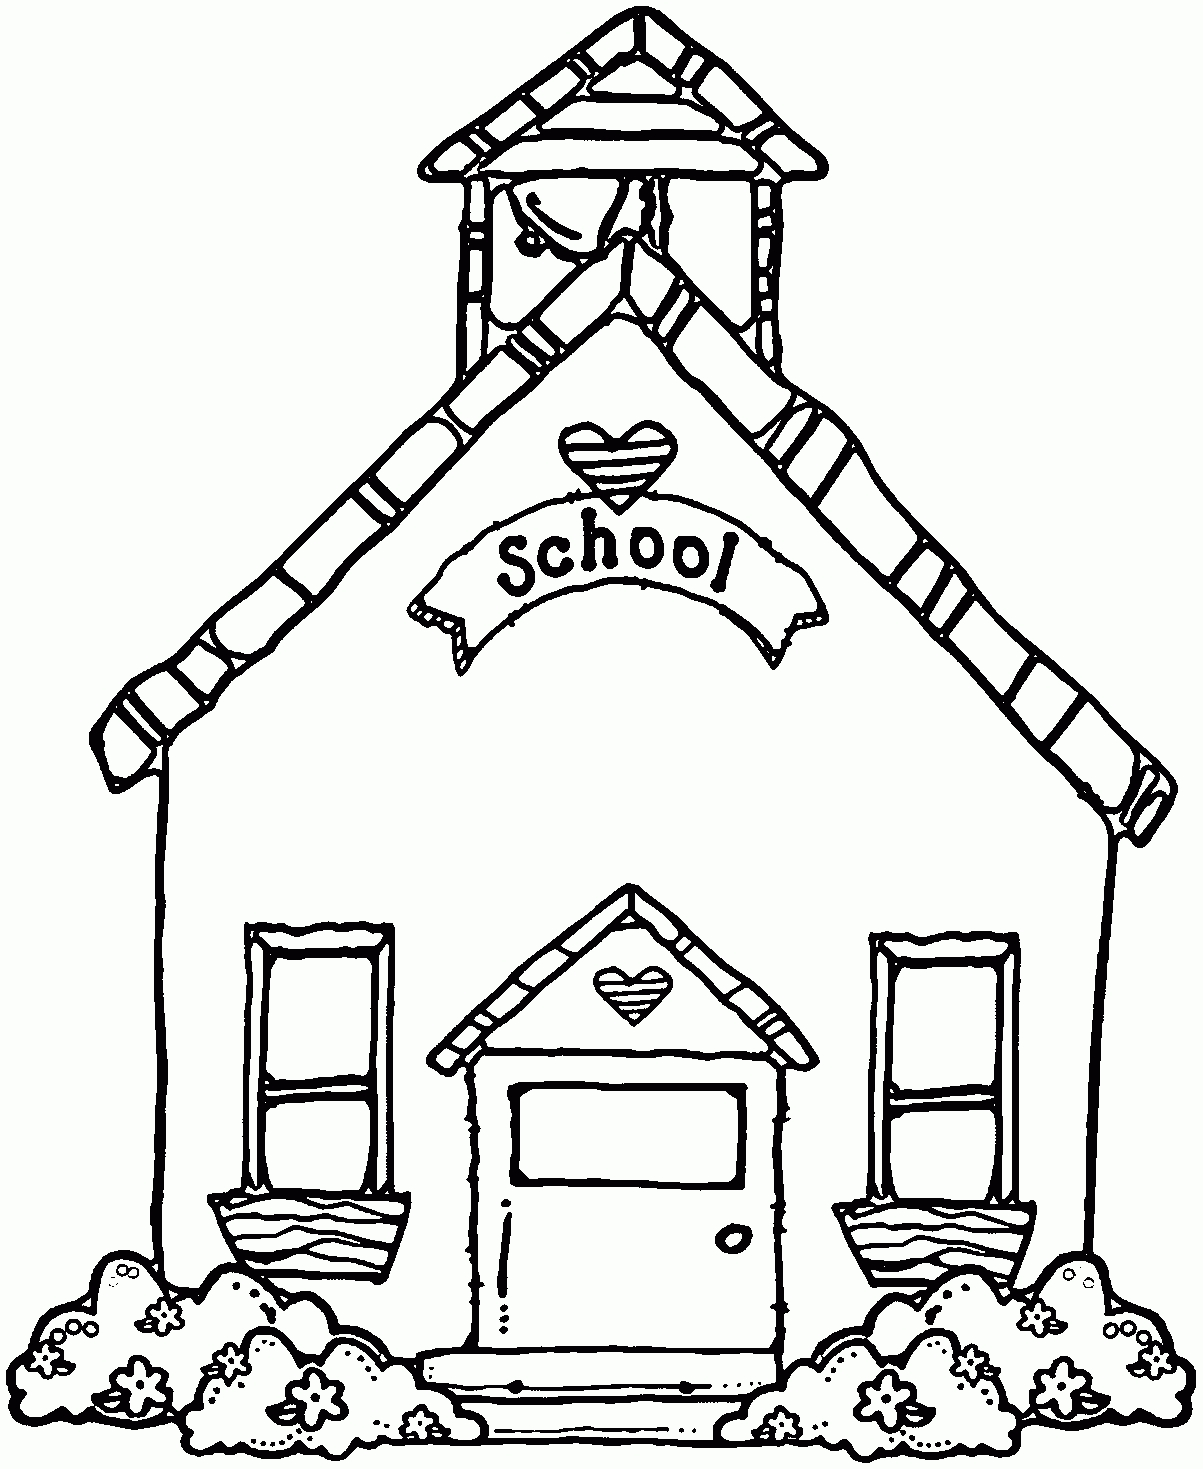 Schoolhouse School House Black And White Clipart Clipartfest with School  House Clipart Black And White 2663